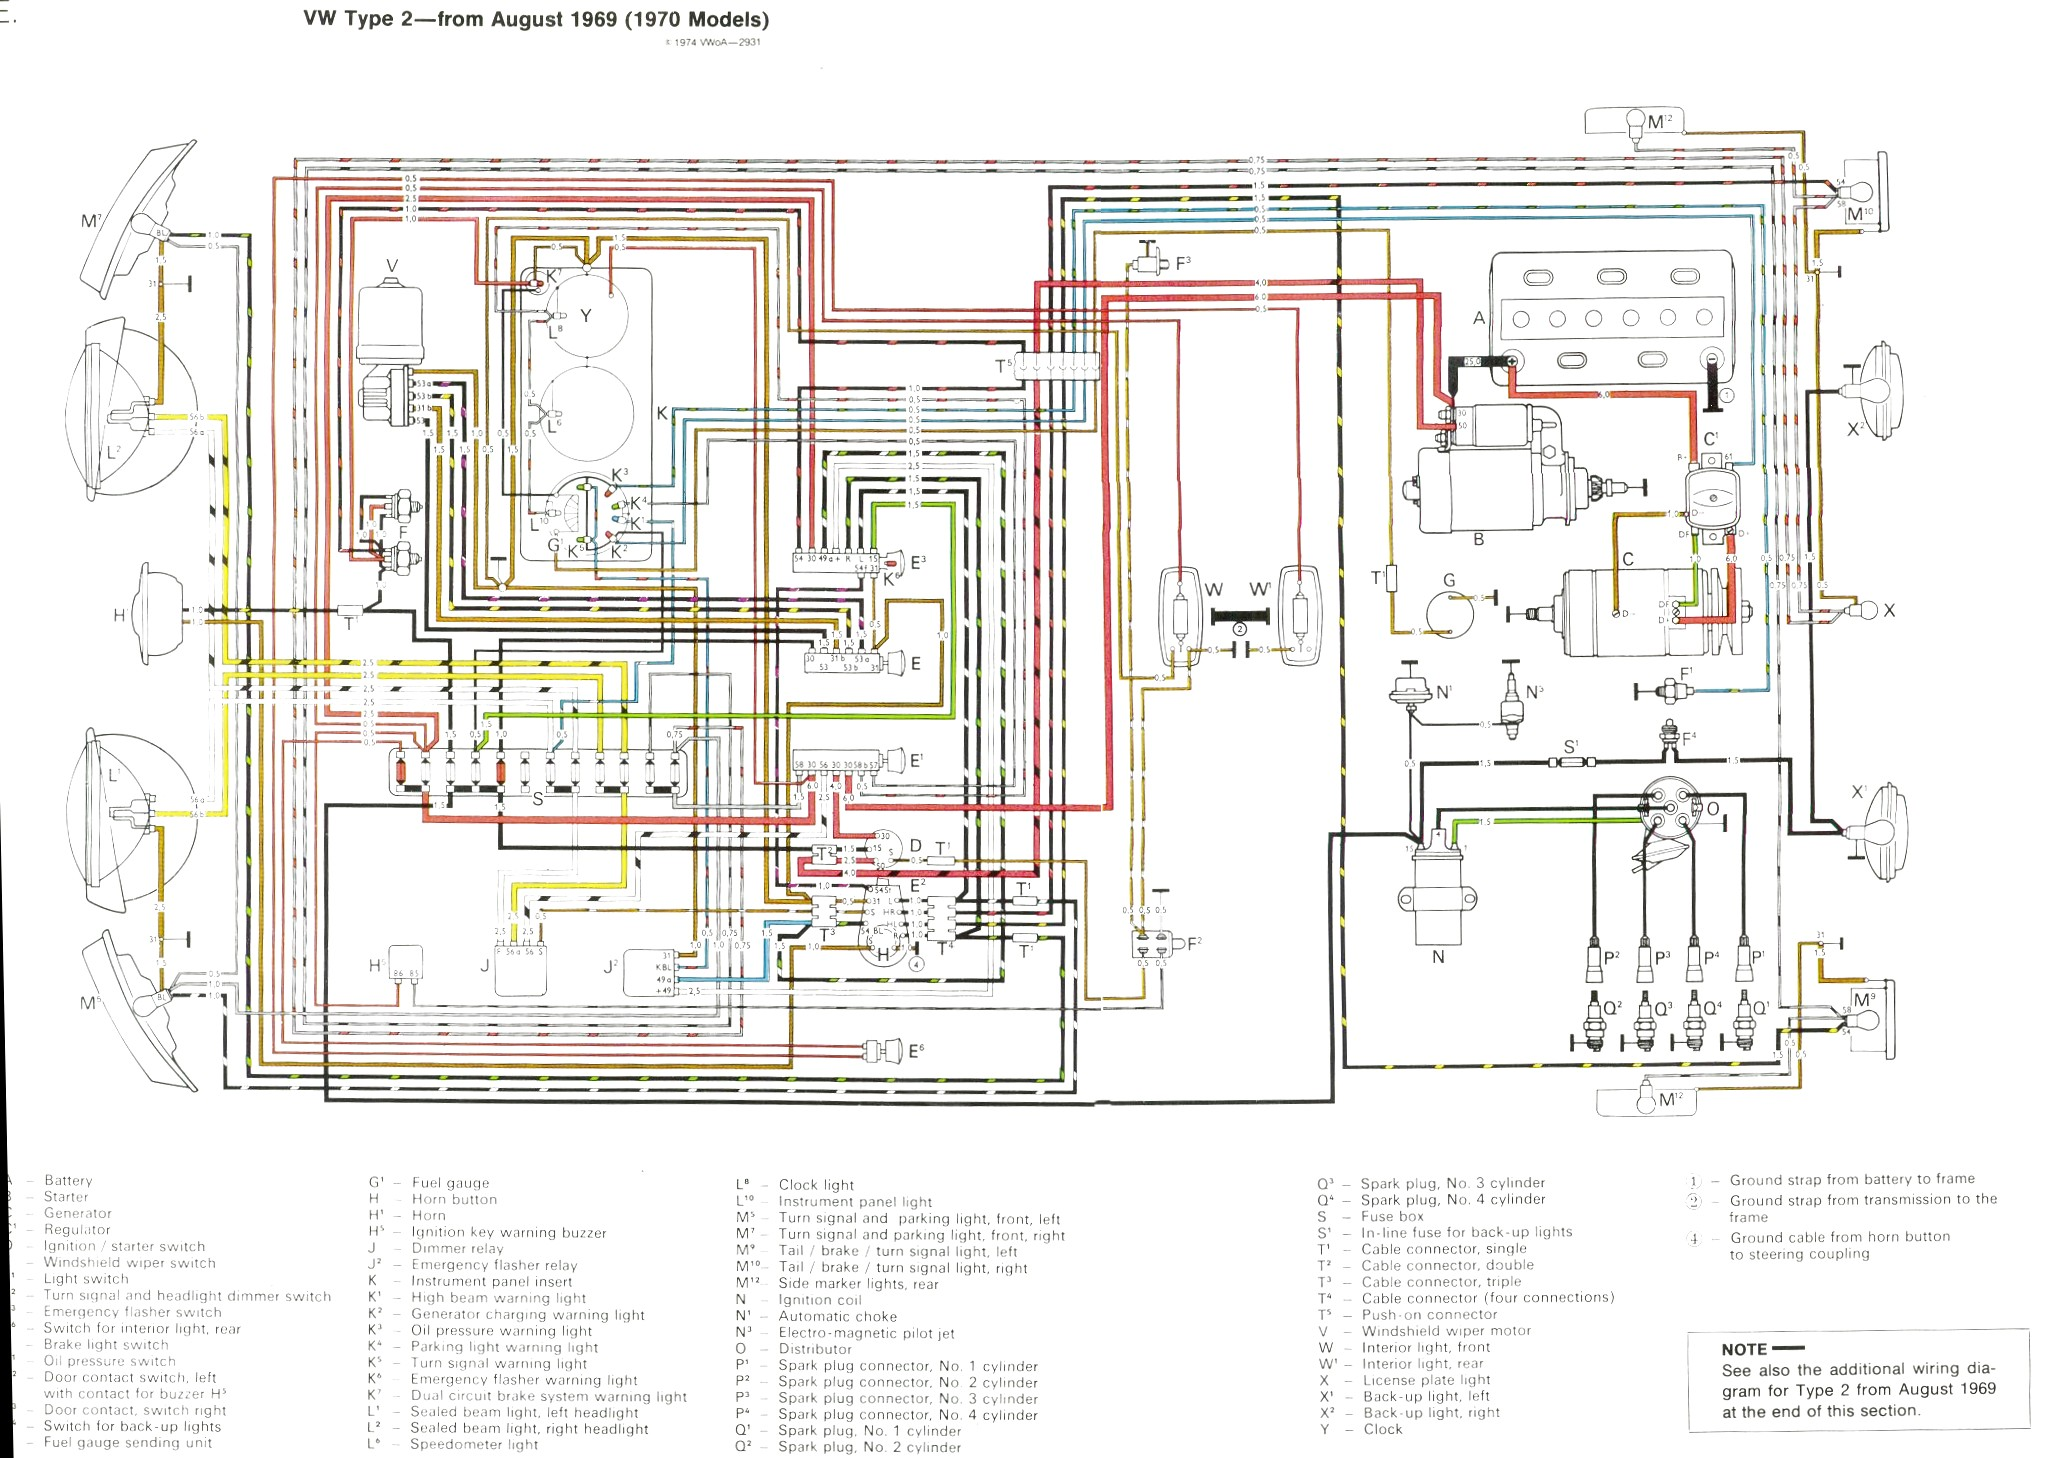 bus 69 70 vintagebus com vw bus (and other) wiring diagrams Wiring Harness Diagram at crackthecode.co